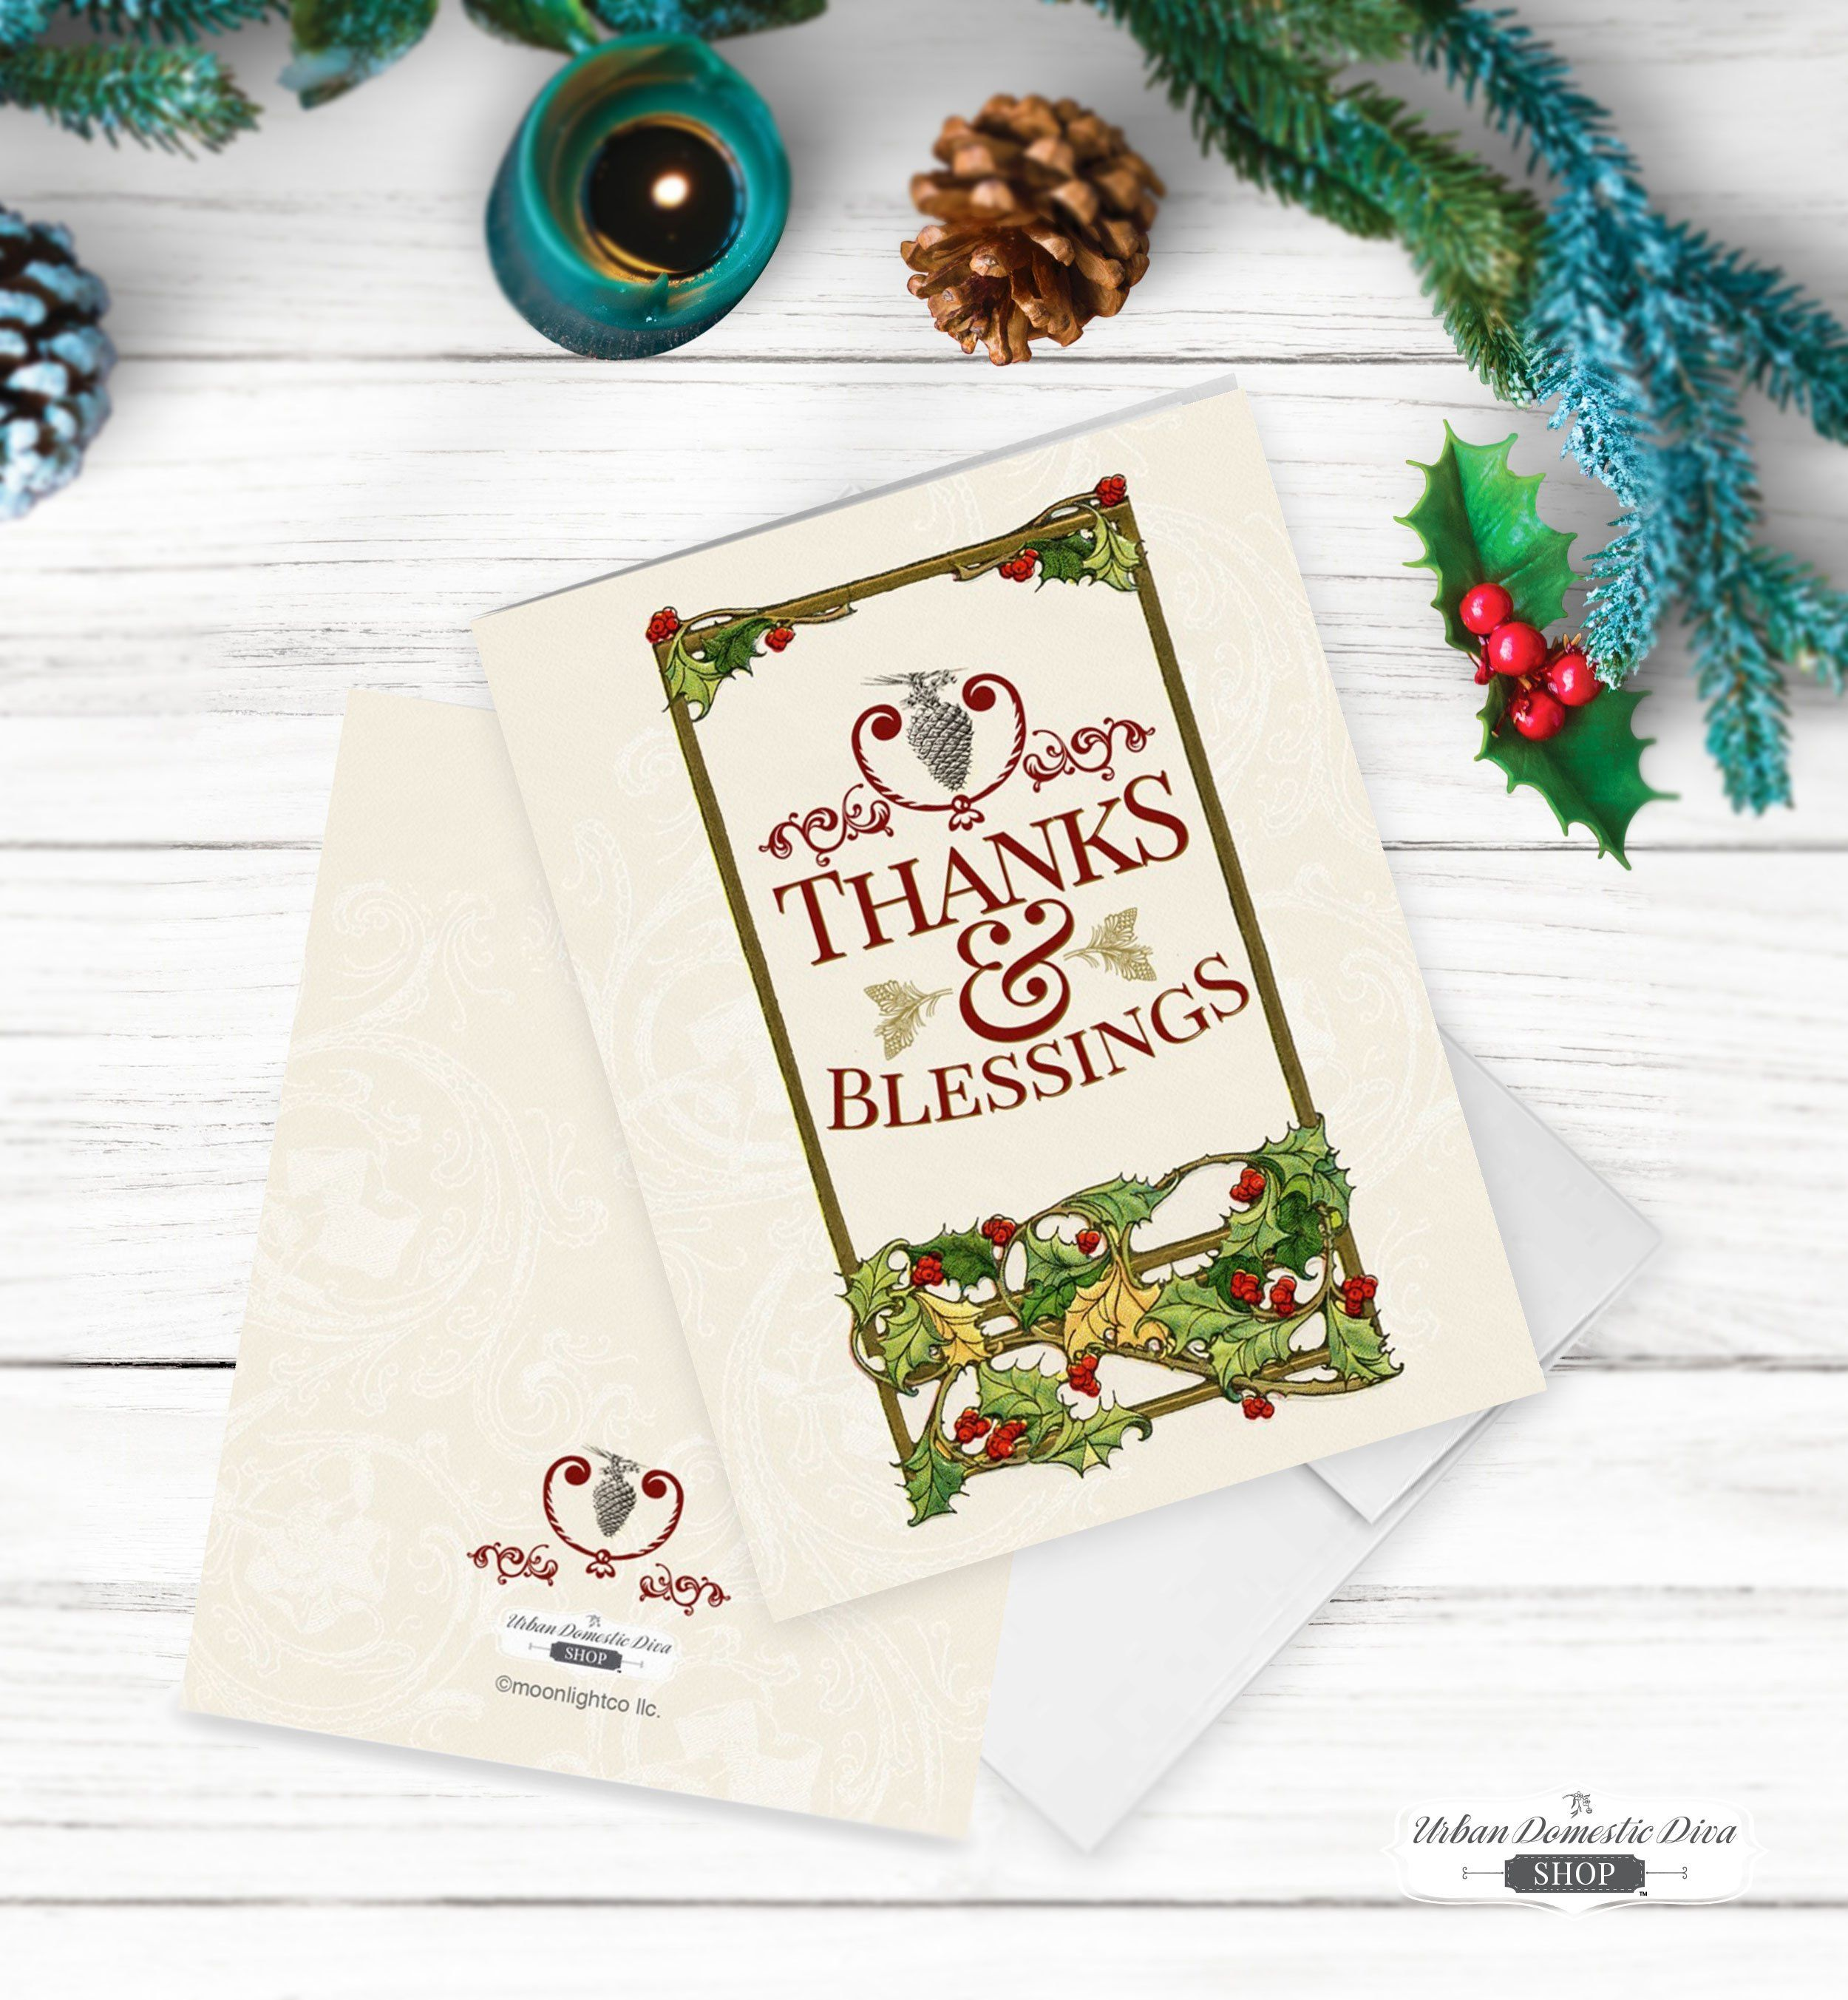 Vintage Christmas Blank Thank You Cards Set Of 5 Urban Domestic